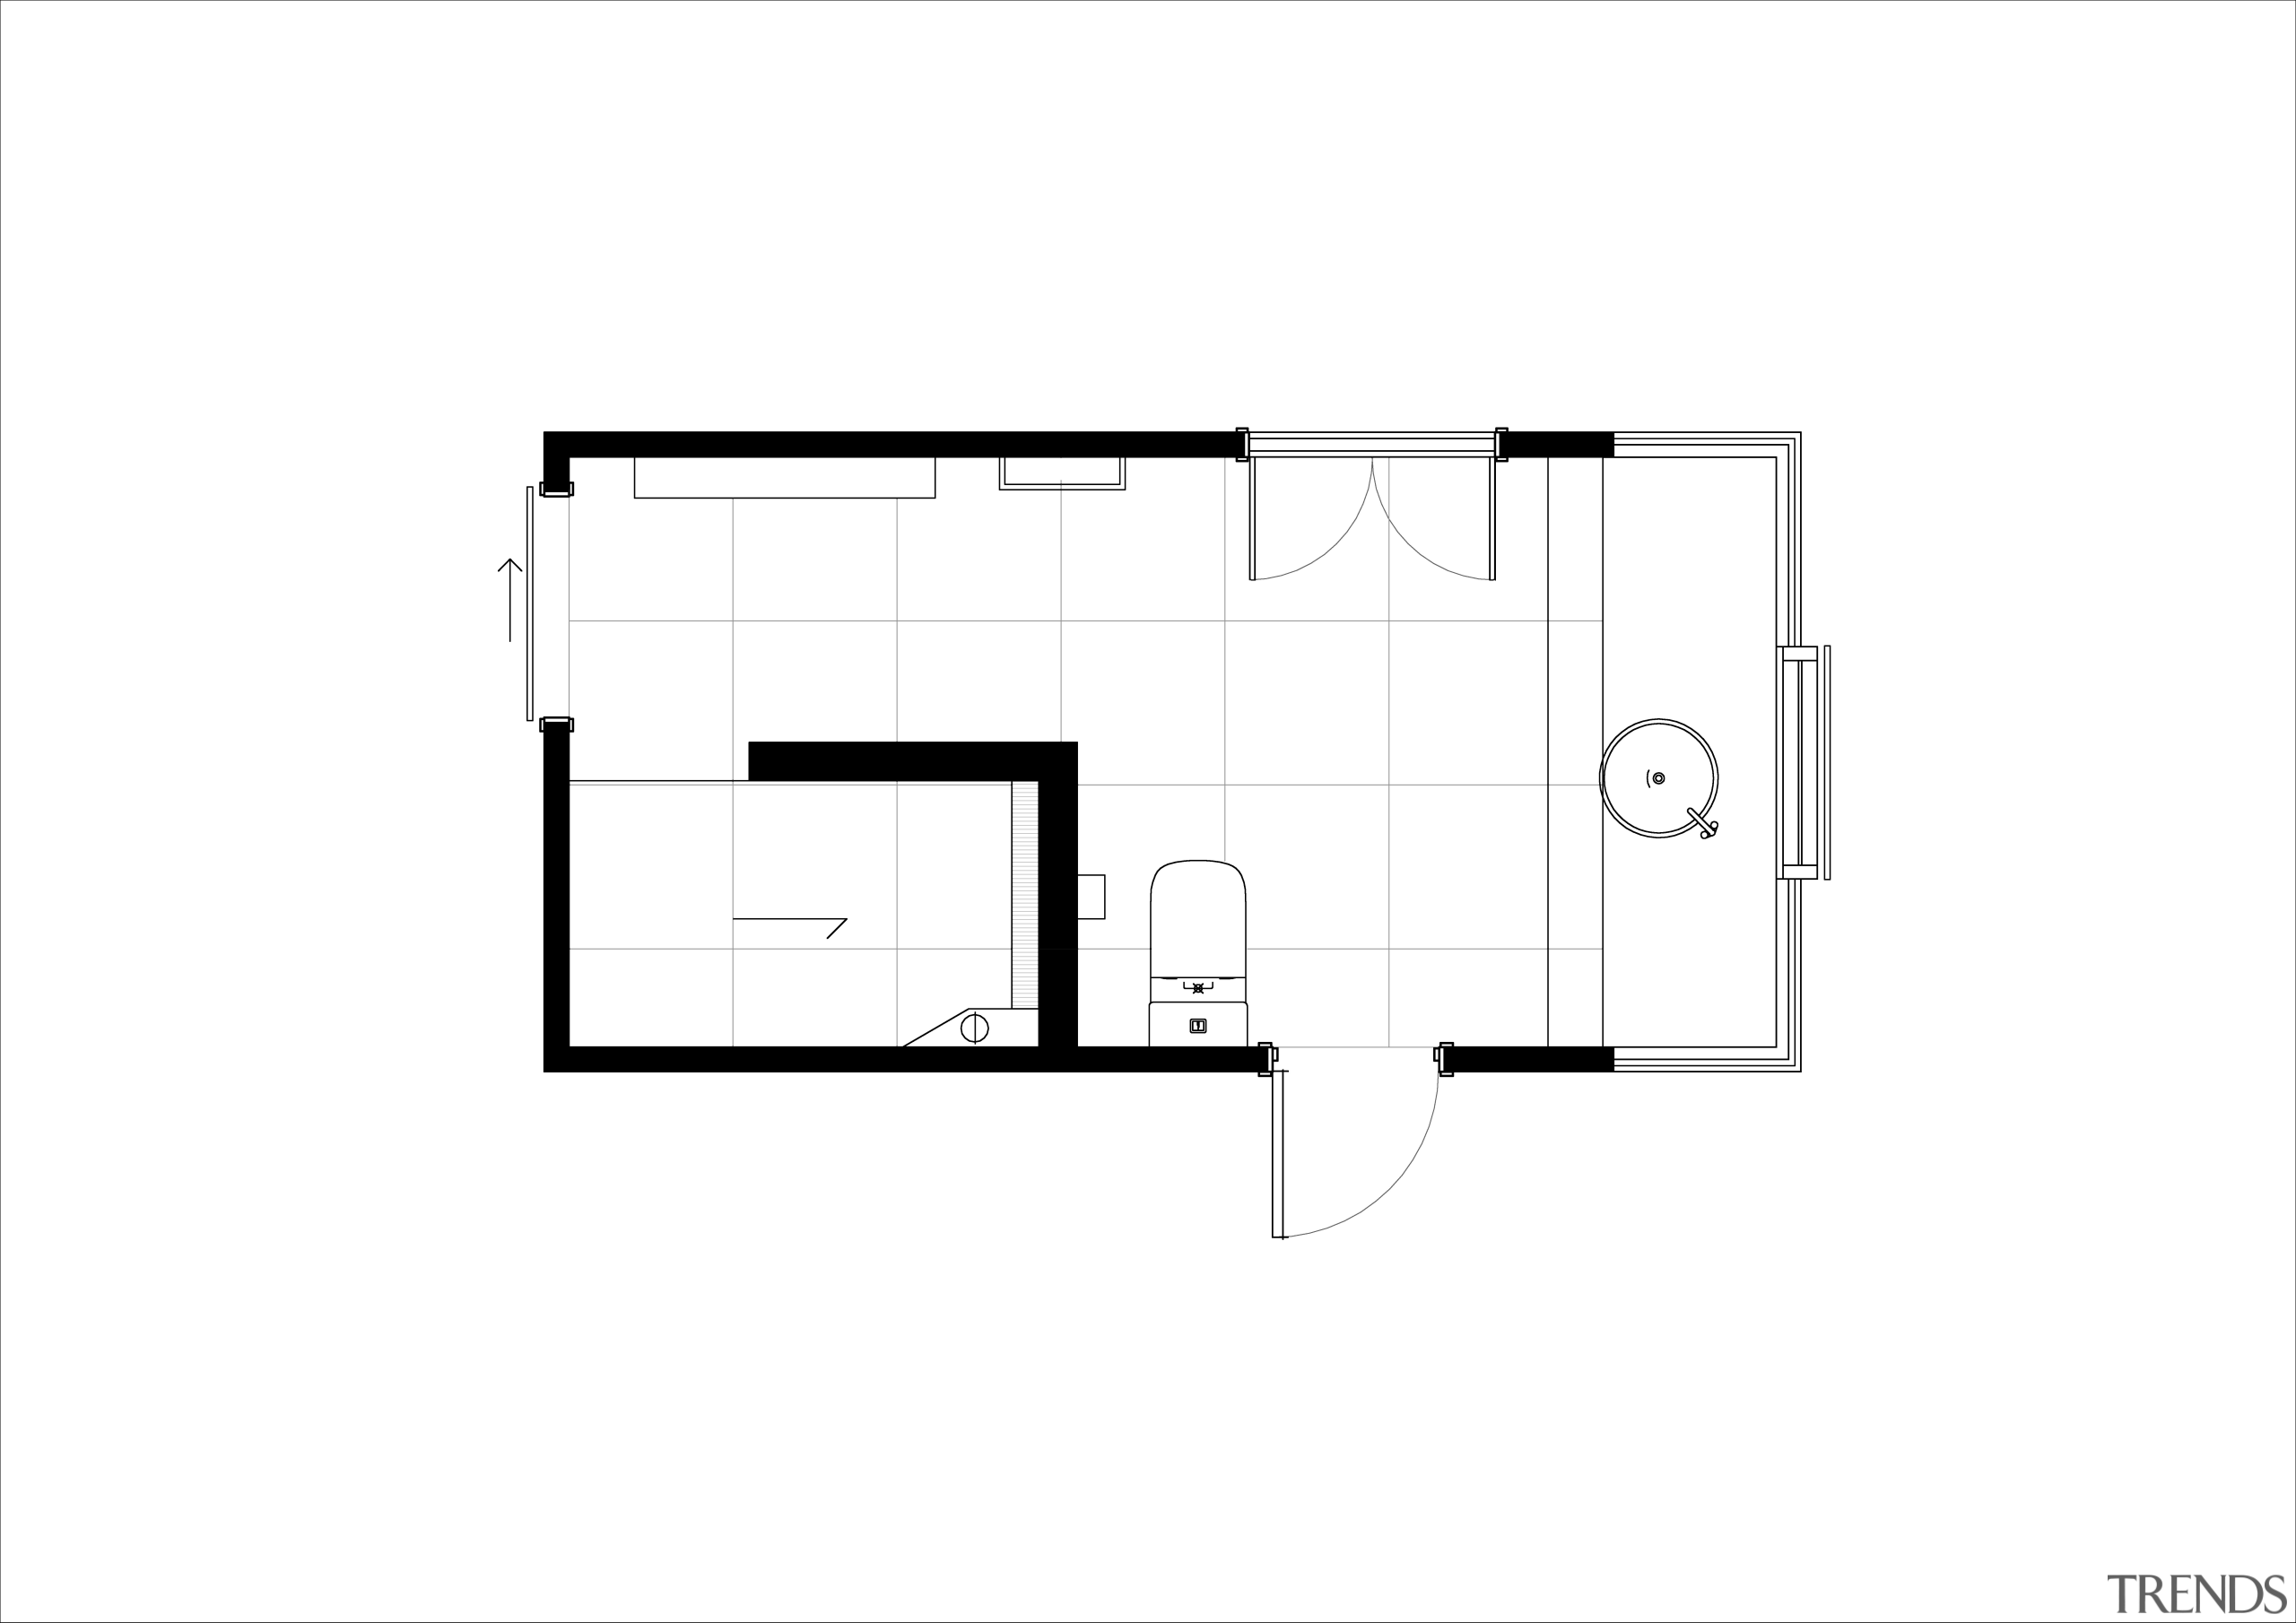 The floor plan shows how the shower doubles angle, architecture, area, design, diagram, drawing, elevation, floor plan, font, line, plan, product, product design, rectangle, square, structure, text, white